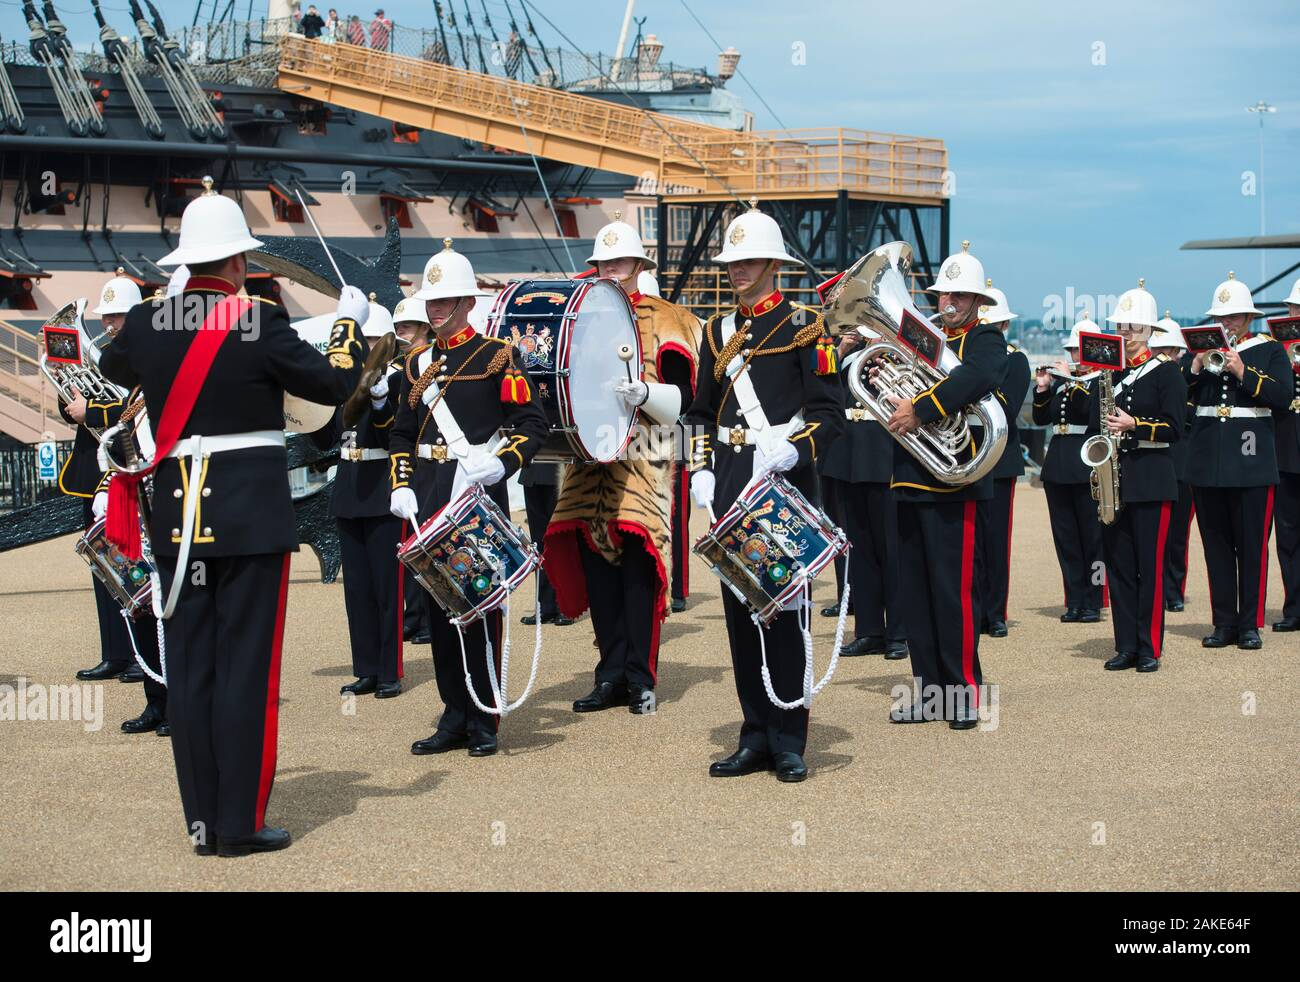 Royal Marines Band Service. D-Day reenactment event day, Portsmouth Historic Dockyard, England. Stock Photo